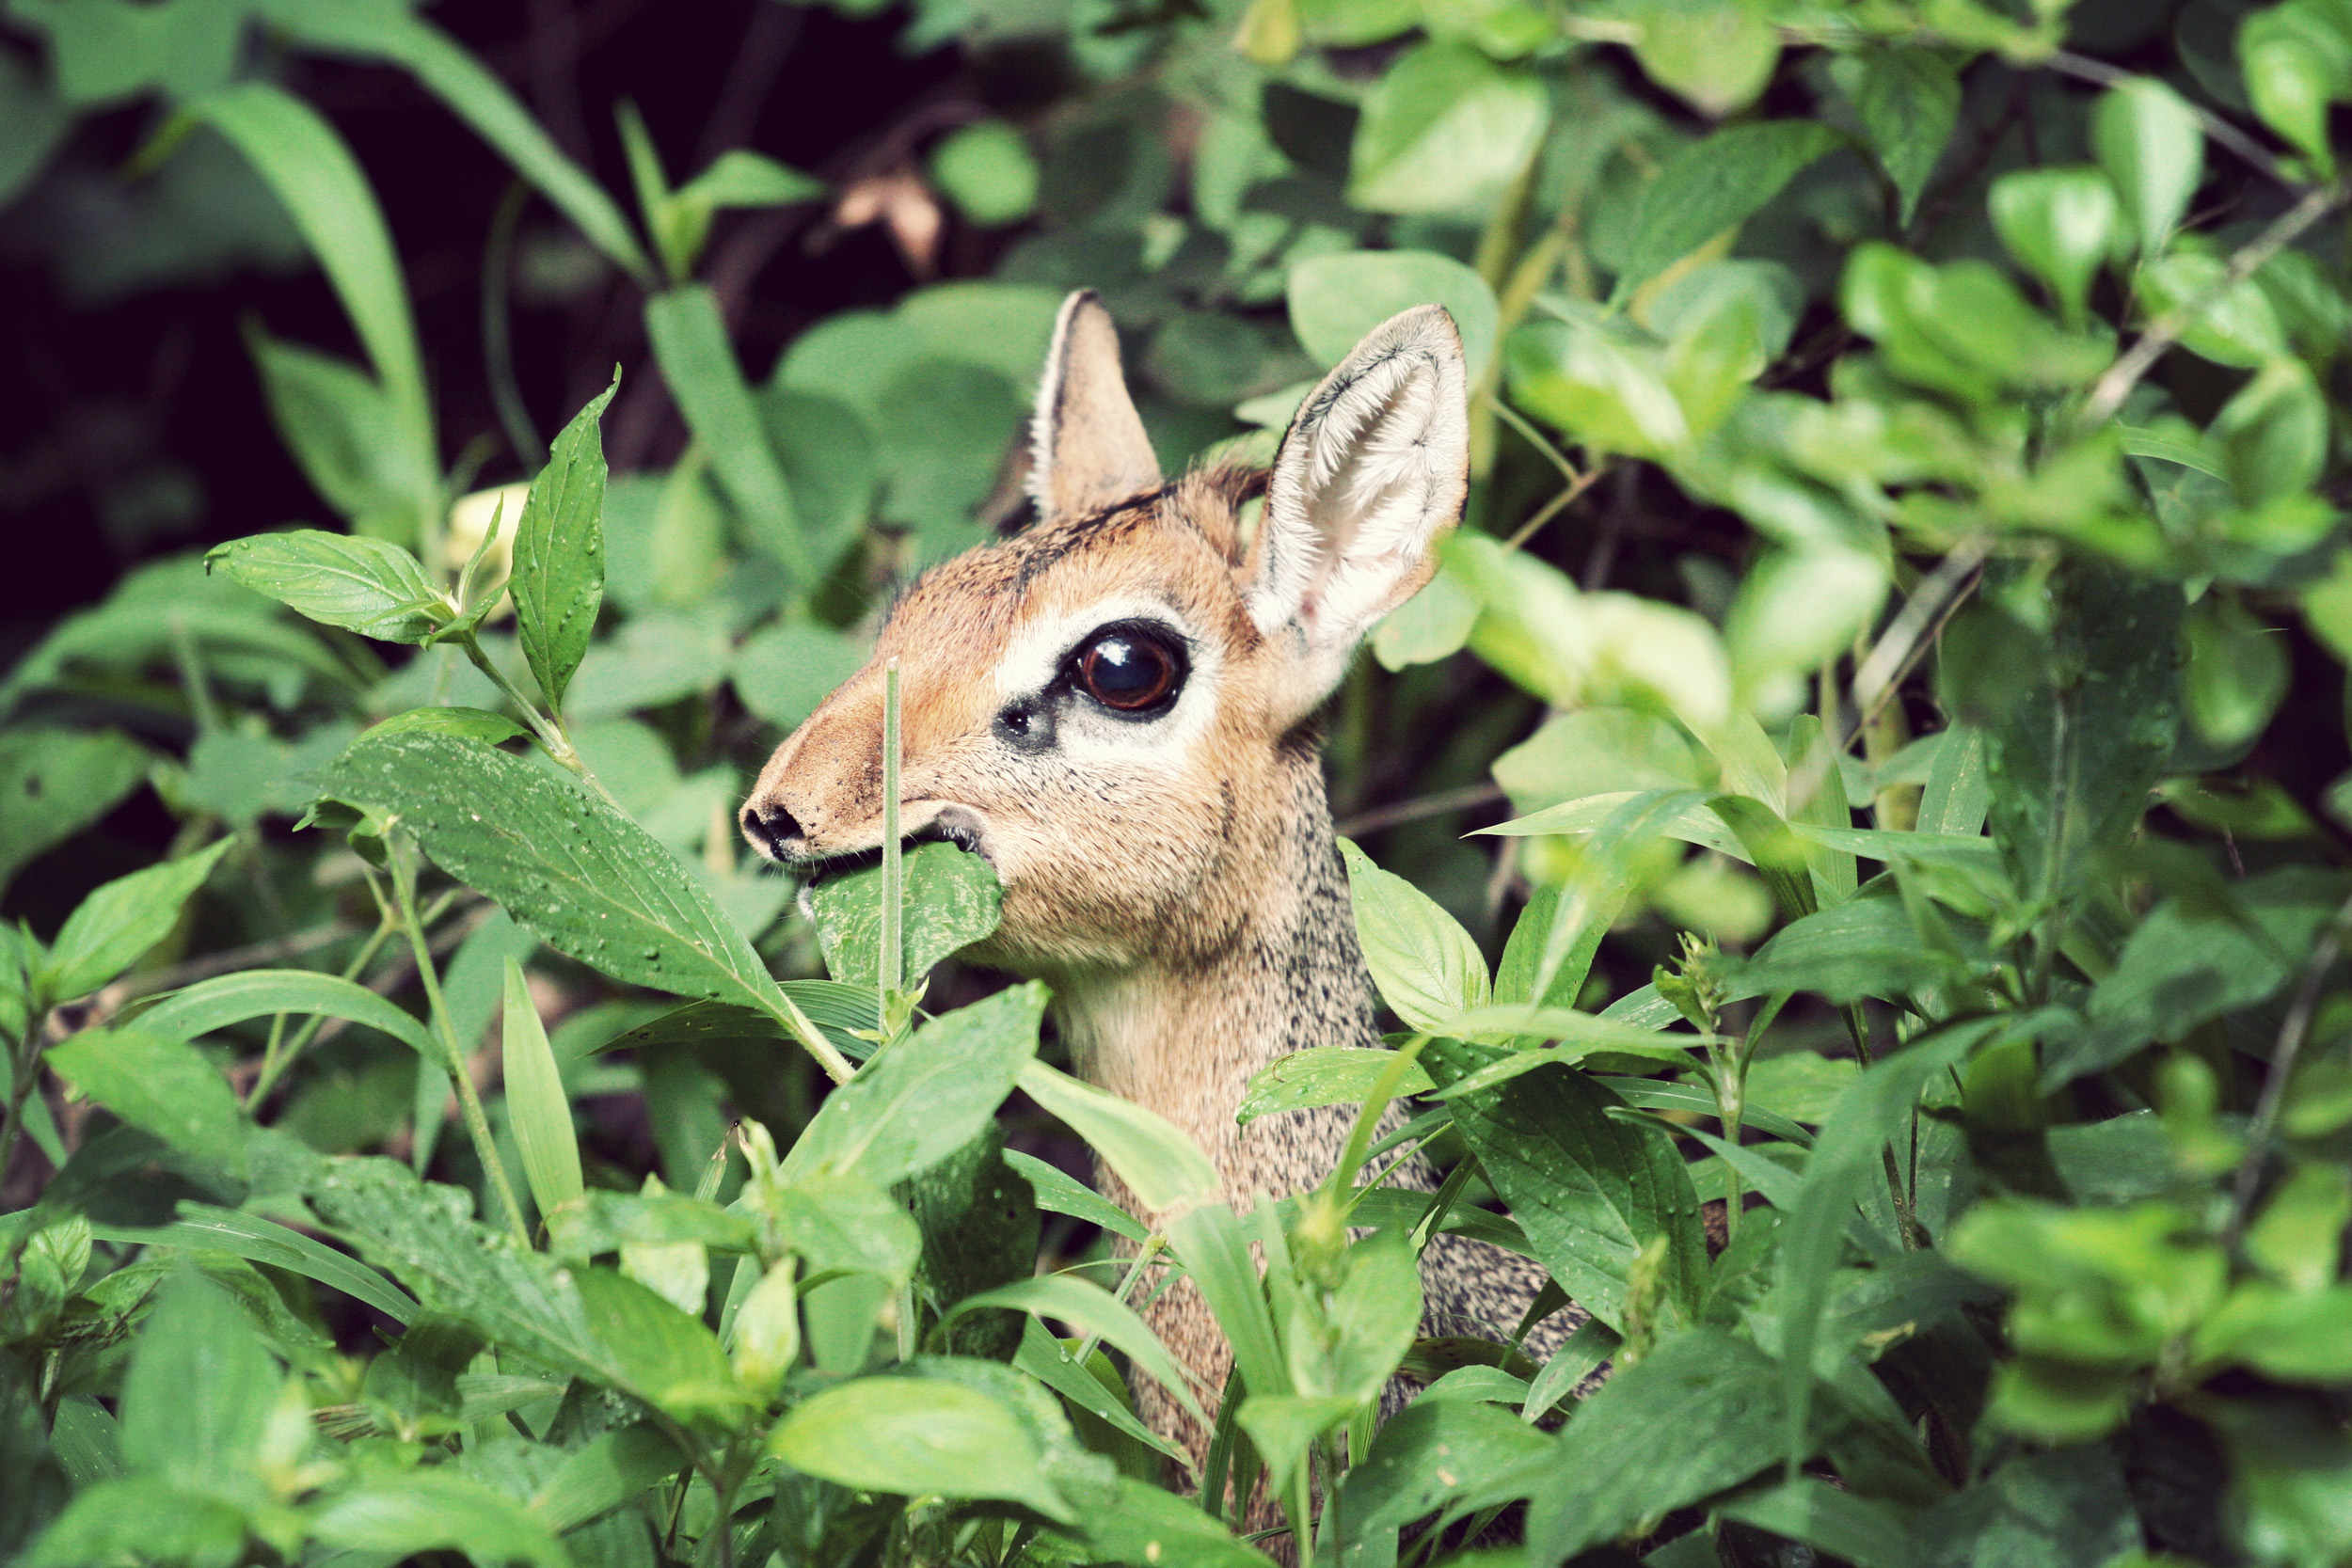 It's a dikdik. They are shy and tiny andridiculous. They have weird noses. I love them.